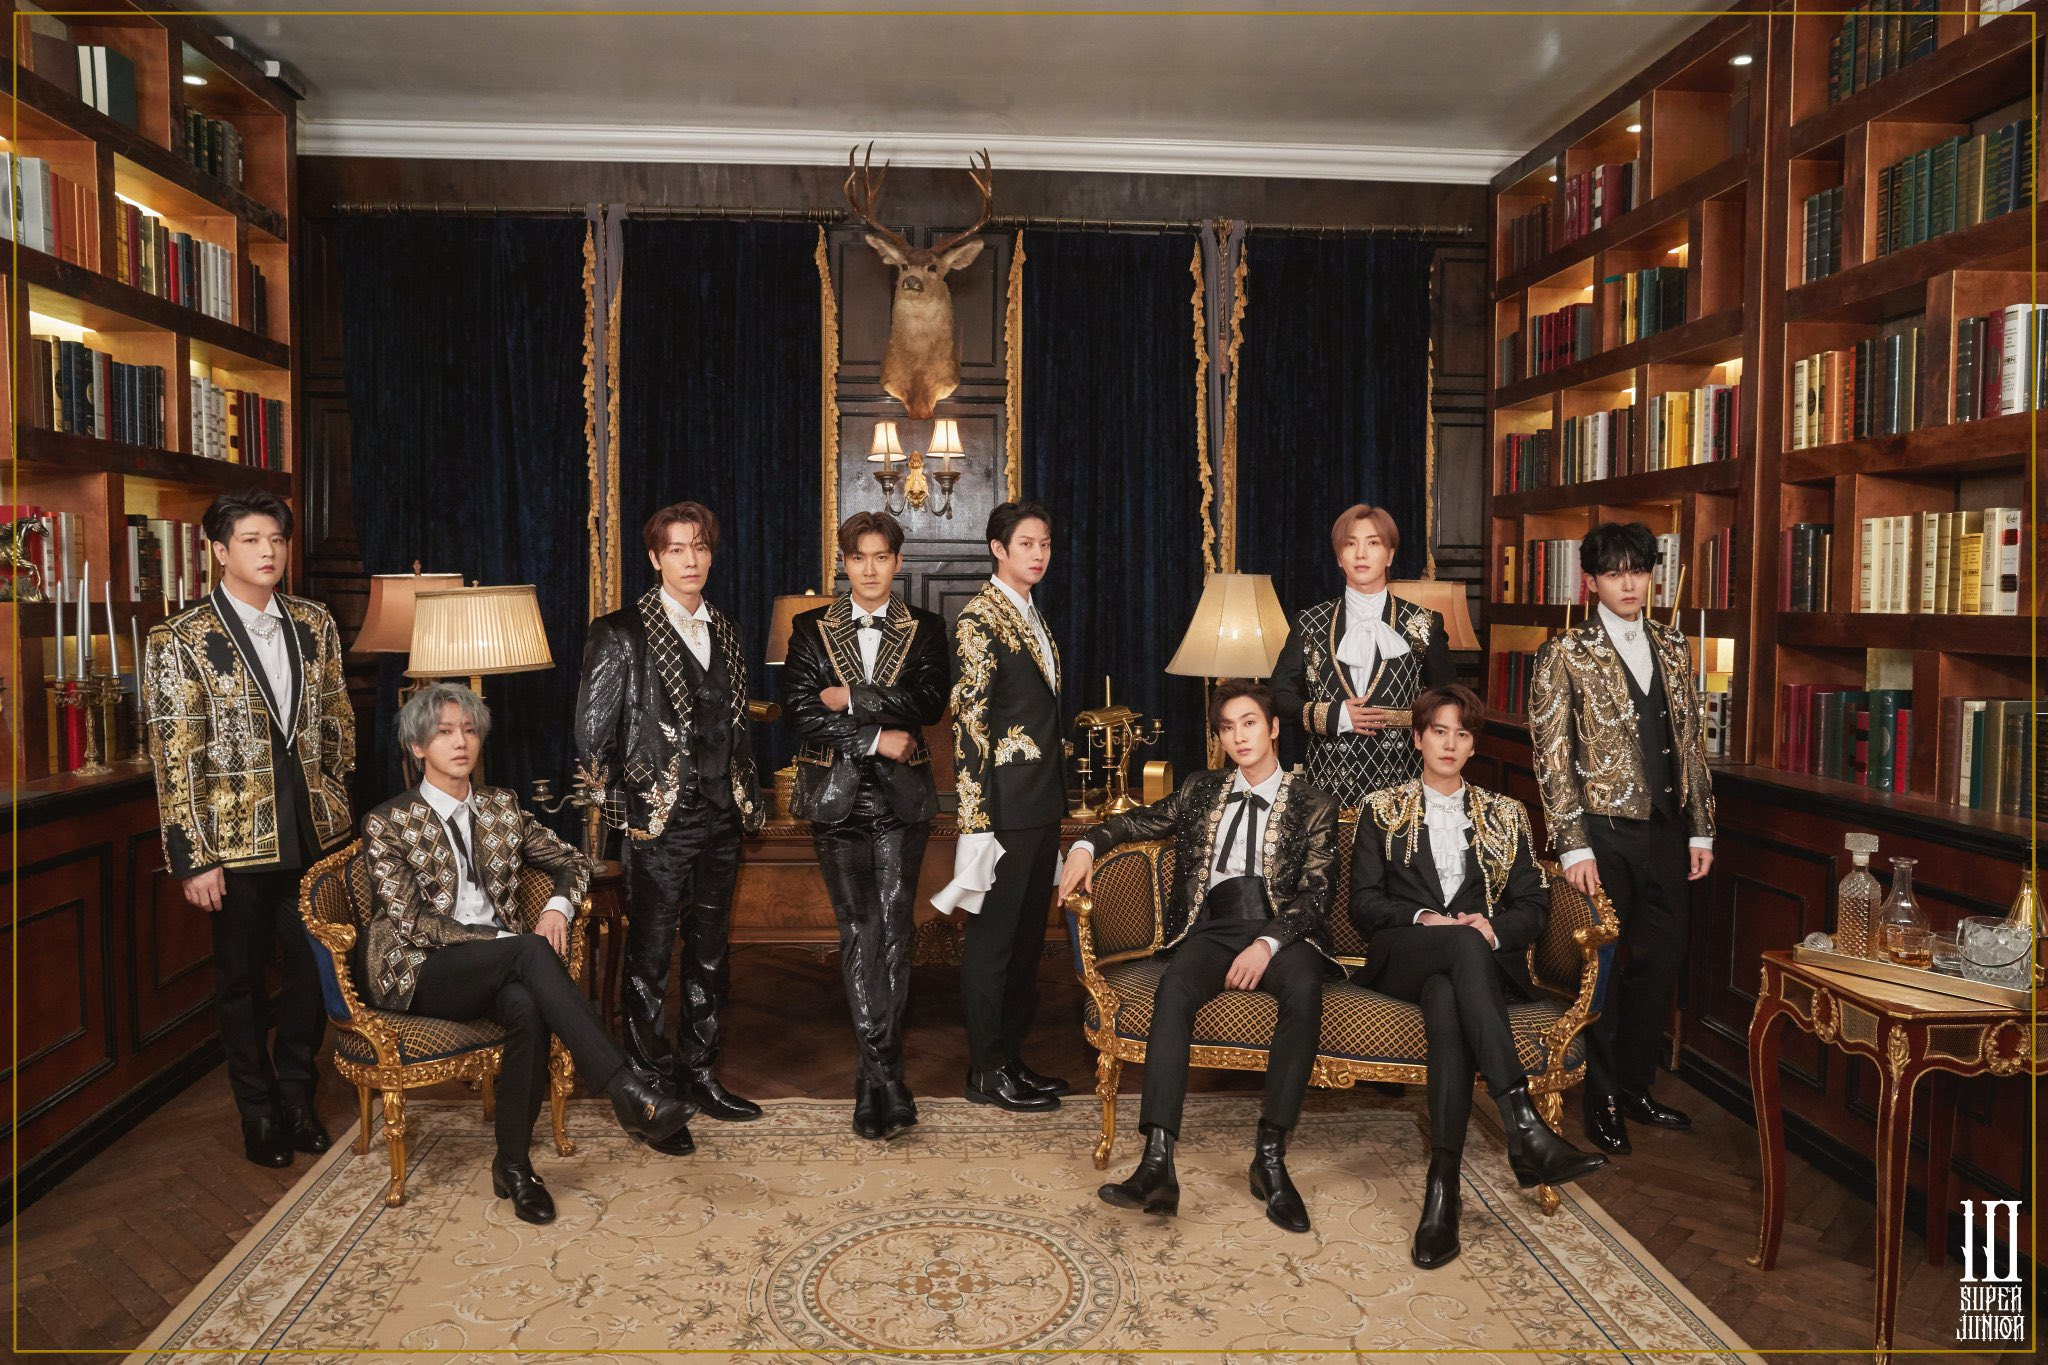 "𝐒 𝐉 𝐅 𝐄 💙💫 #𝙏𝙝𝙚𝙍𝙚𝙣𝙖𝙞𝙨𝙨𝙖𝙣𝙘𝙚 в Twitter: ""[#NEWS] # SuperJunior revealed the photo teasers for their comeback 10th album #TheRenaissance Started with group photo teasers that were released today (07/12), LabelSJ planning"